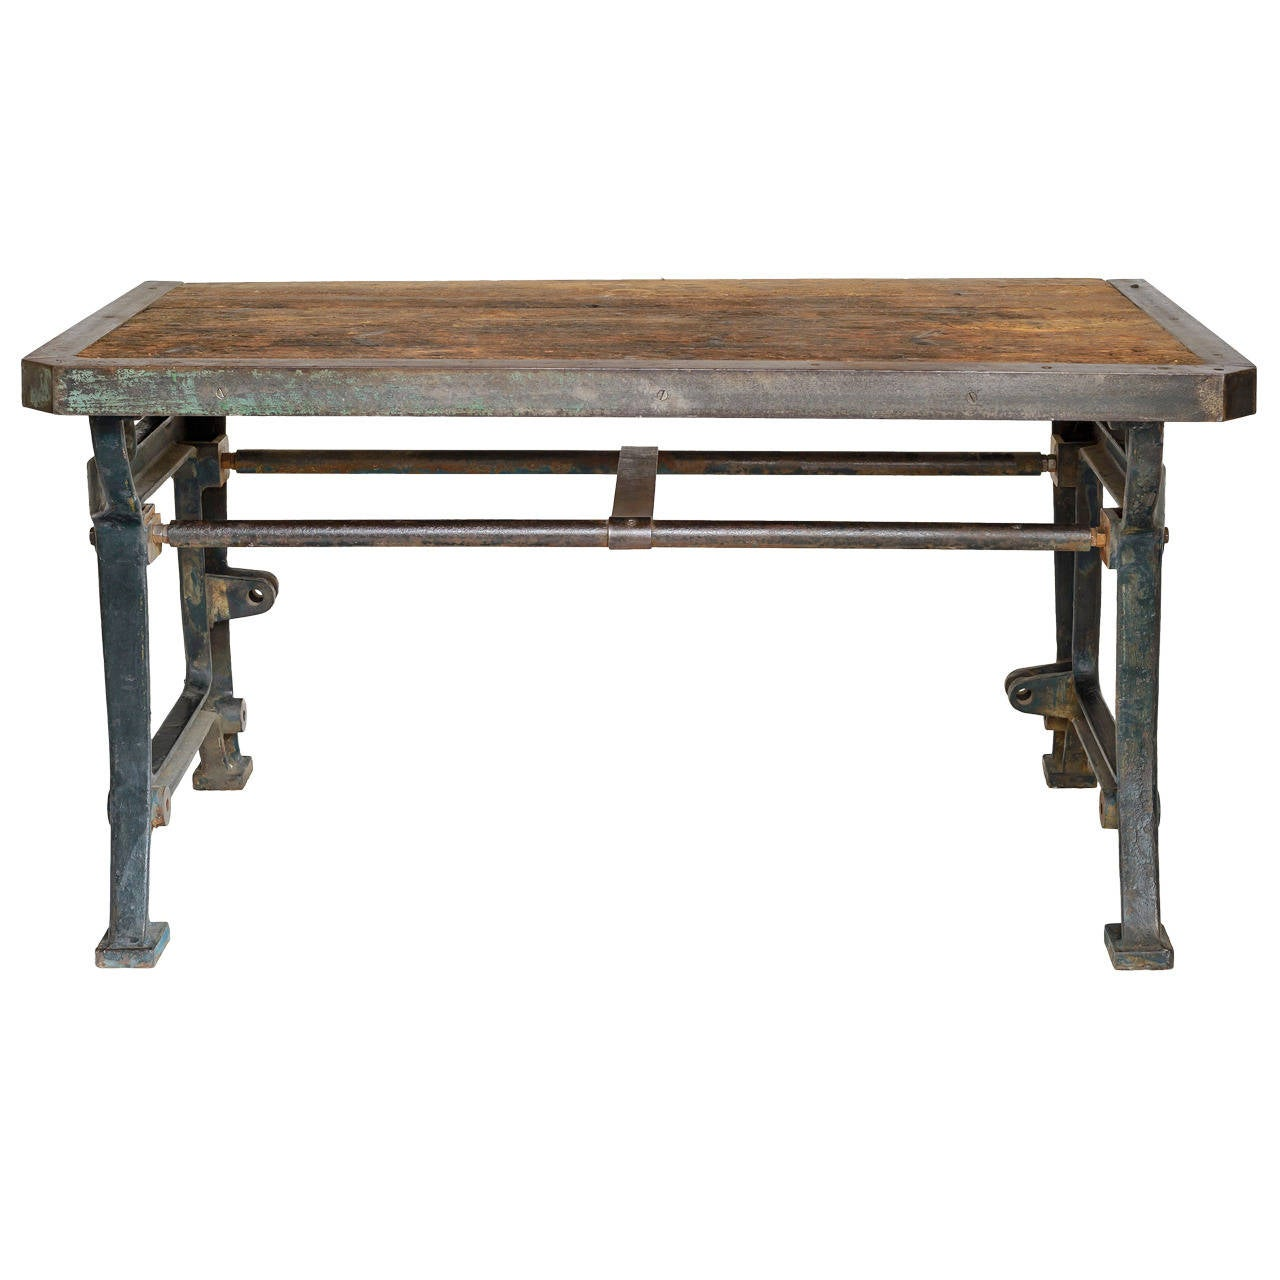 19th Century French Industrial Table